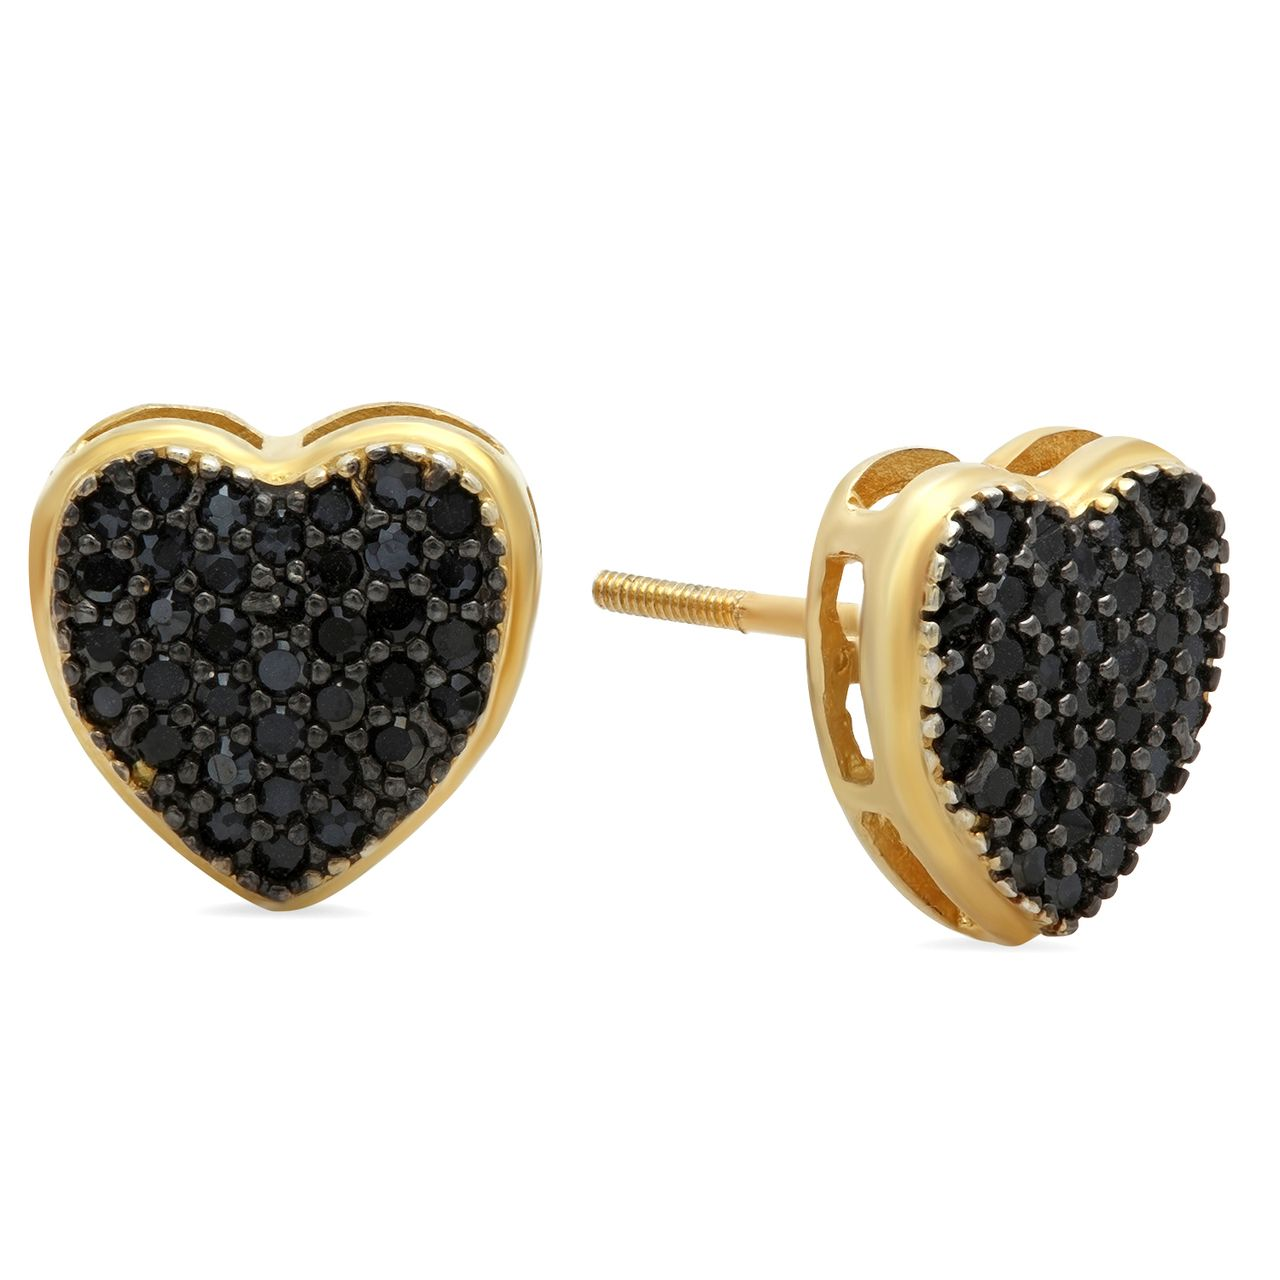 10mm - 14k Yellow Gold Plated over Solid 925 Sterling Silver Black CZ Heart Earrings